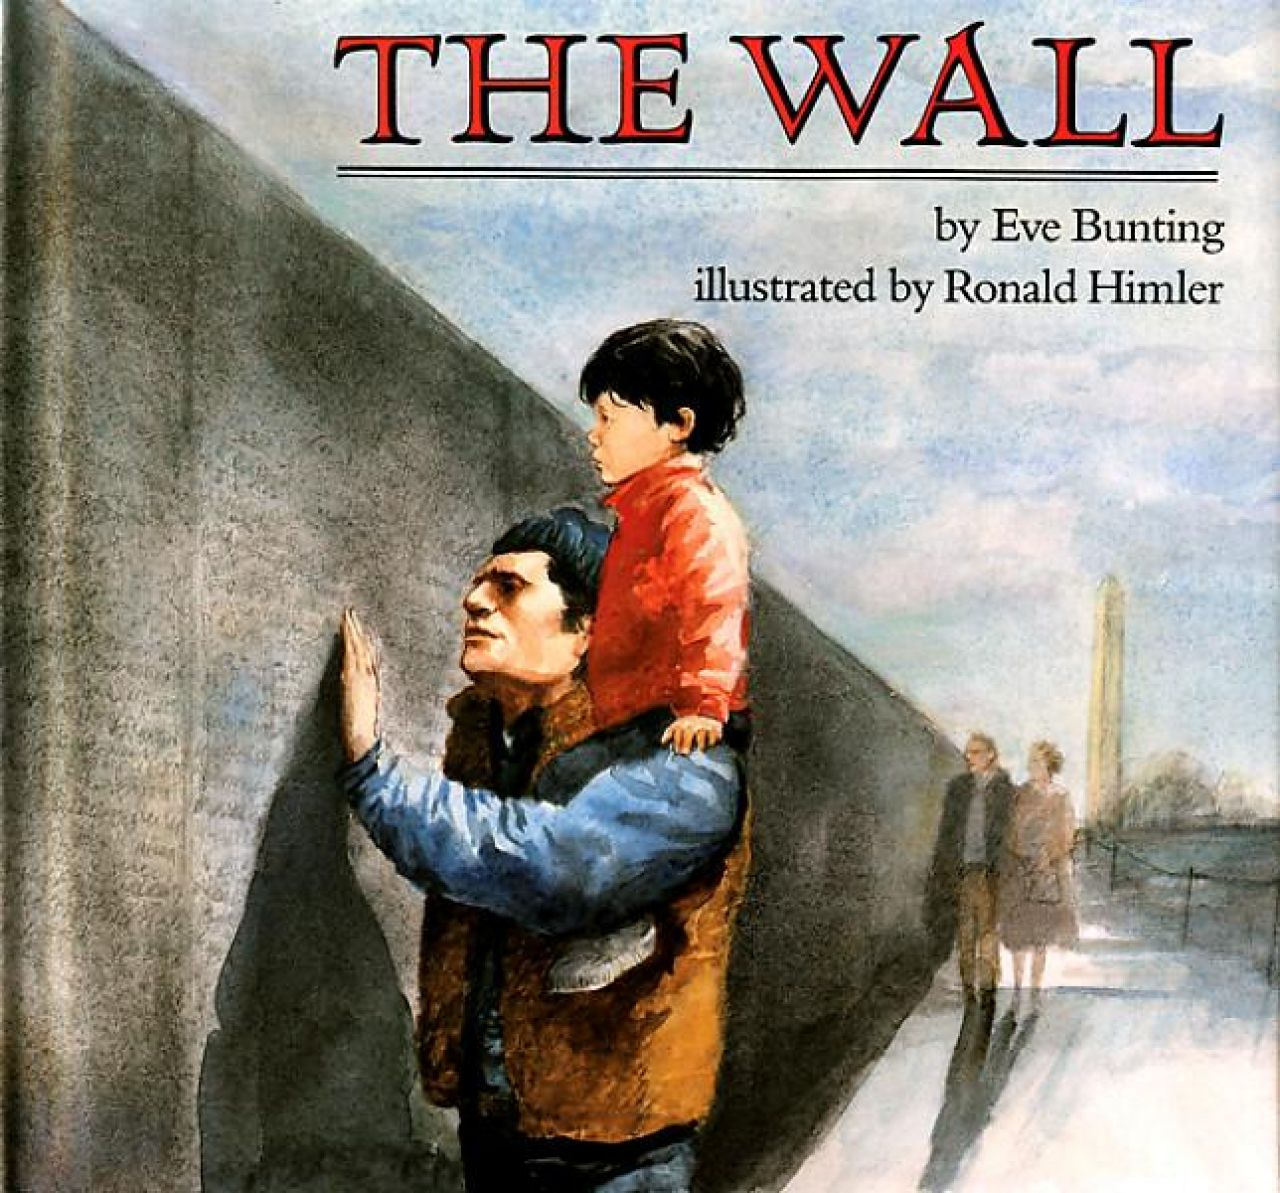 'The Wall by Eve Bunting'